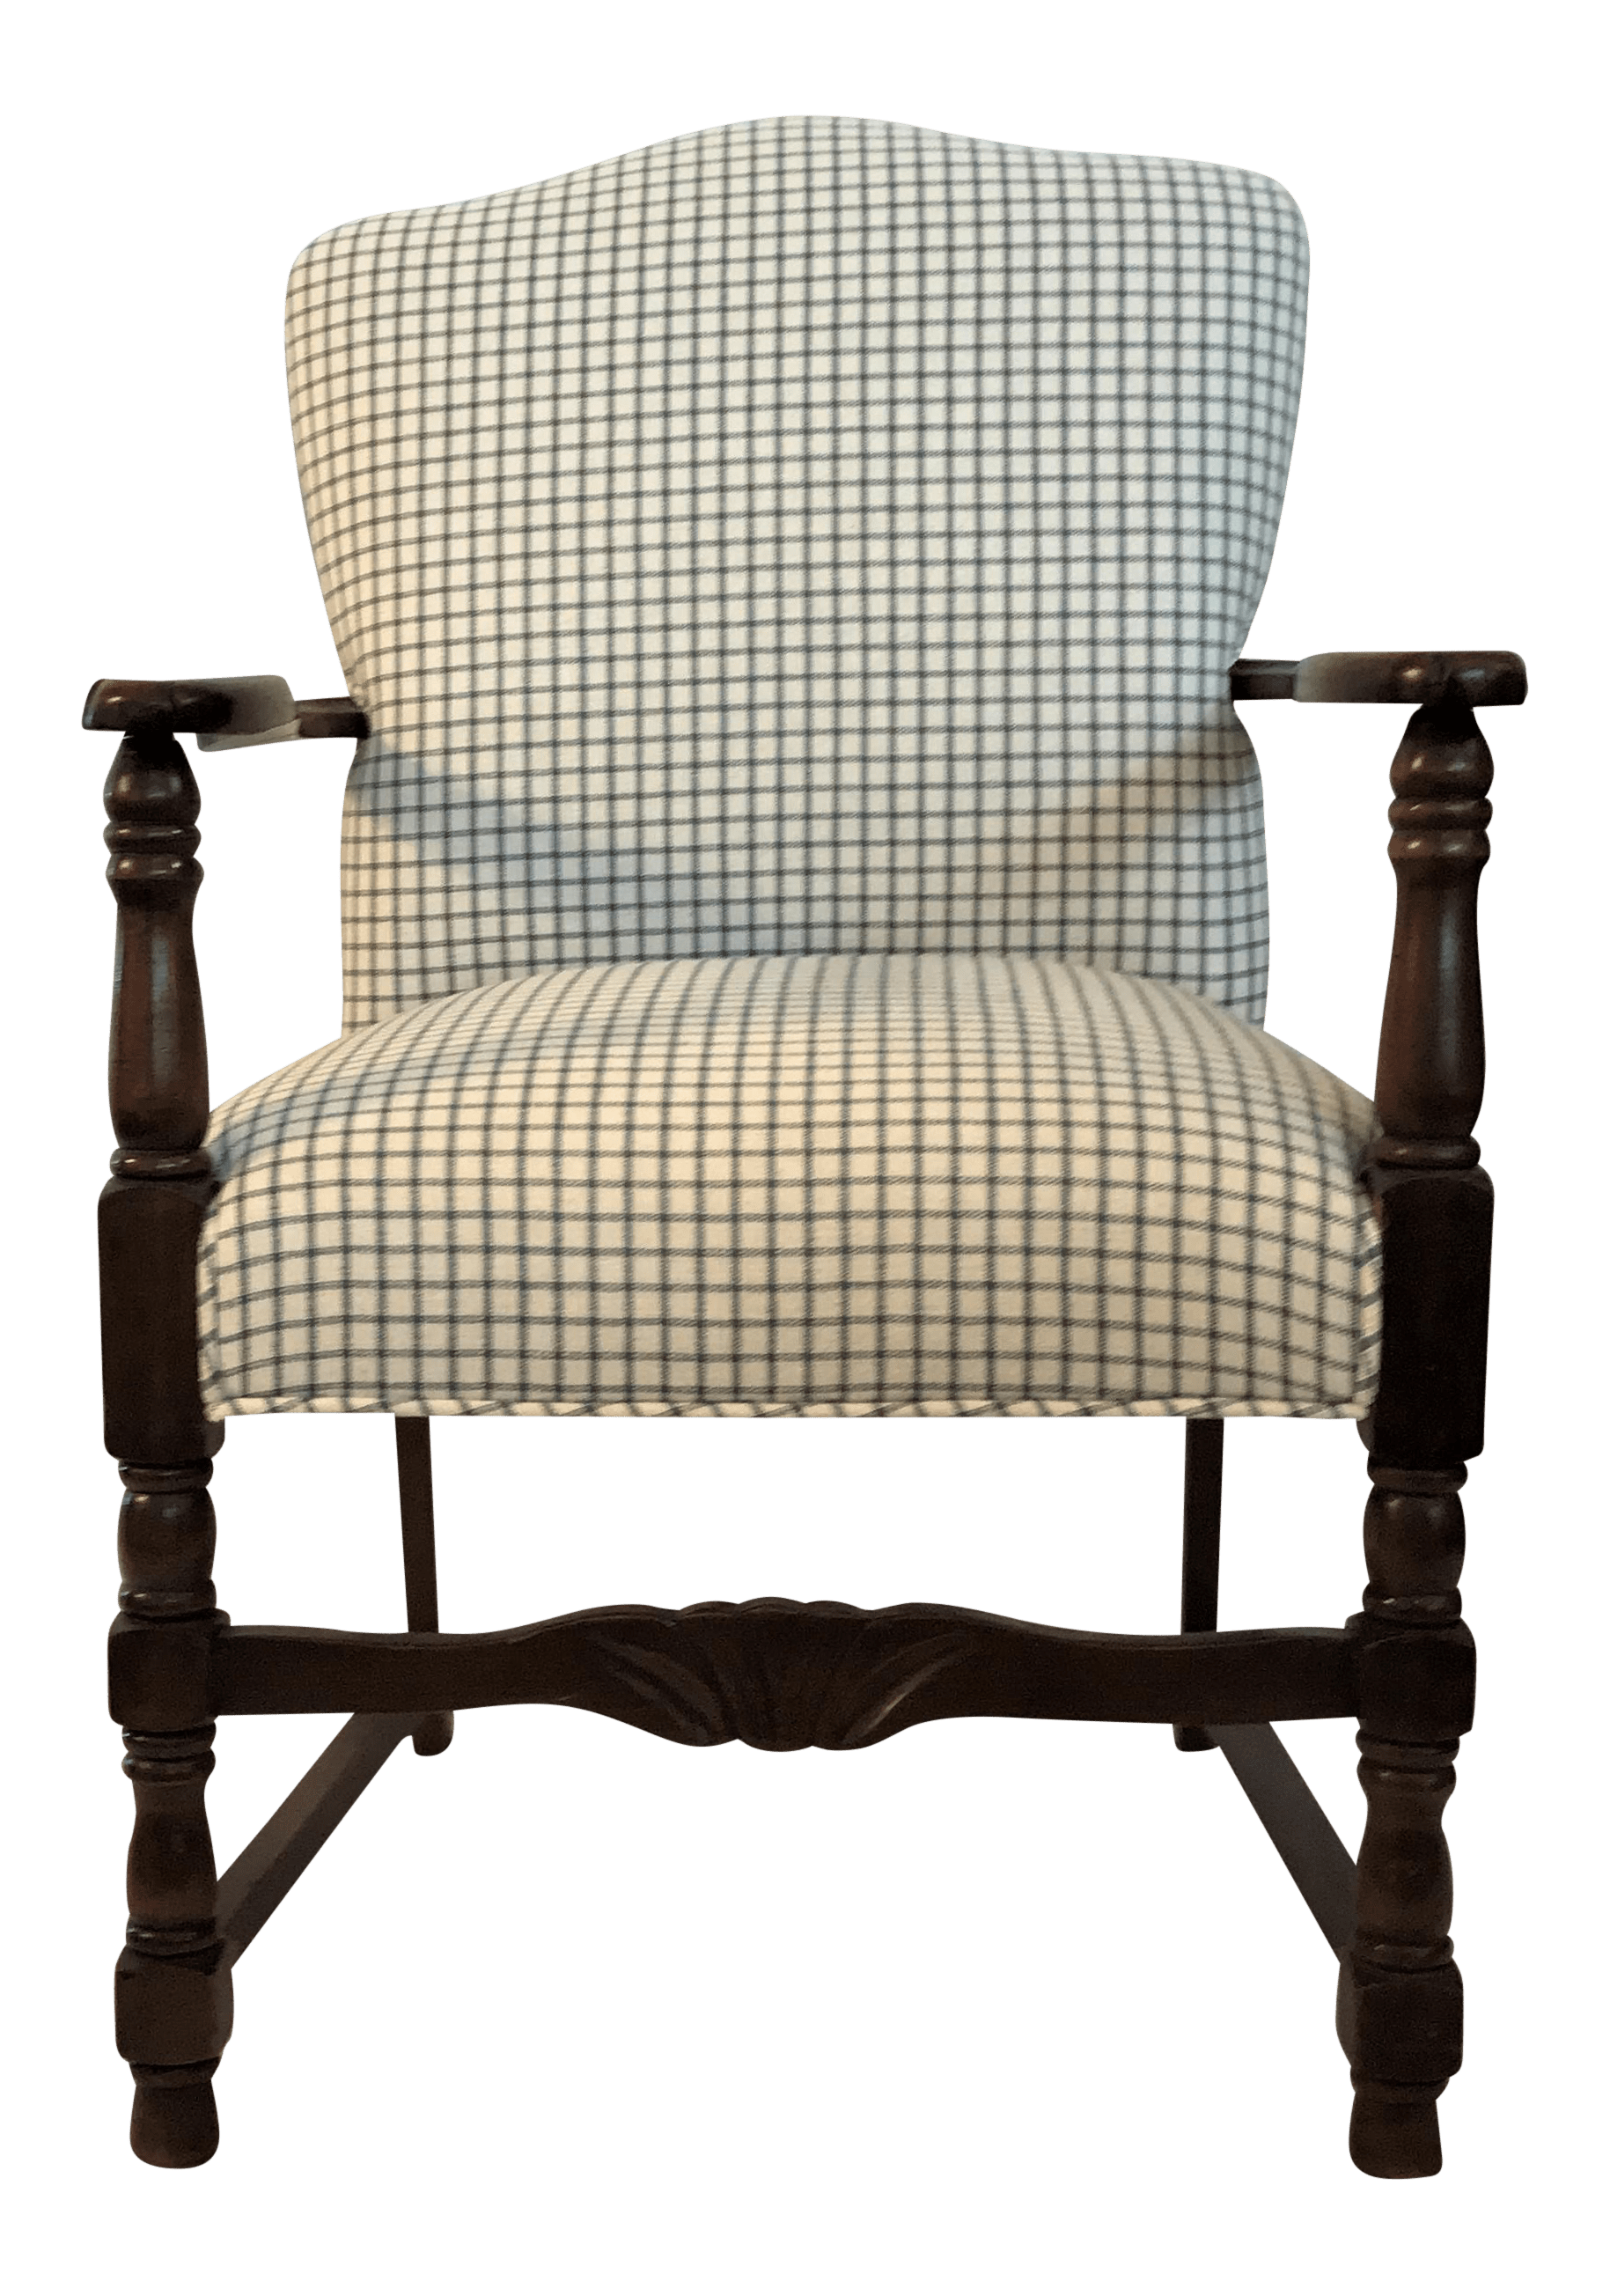 Fauteuils Customisés Vintage French Fauteuil Arm Chair Custom Upholstered